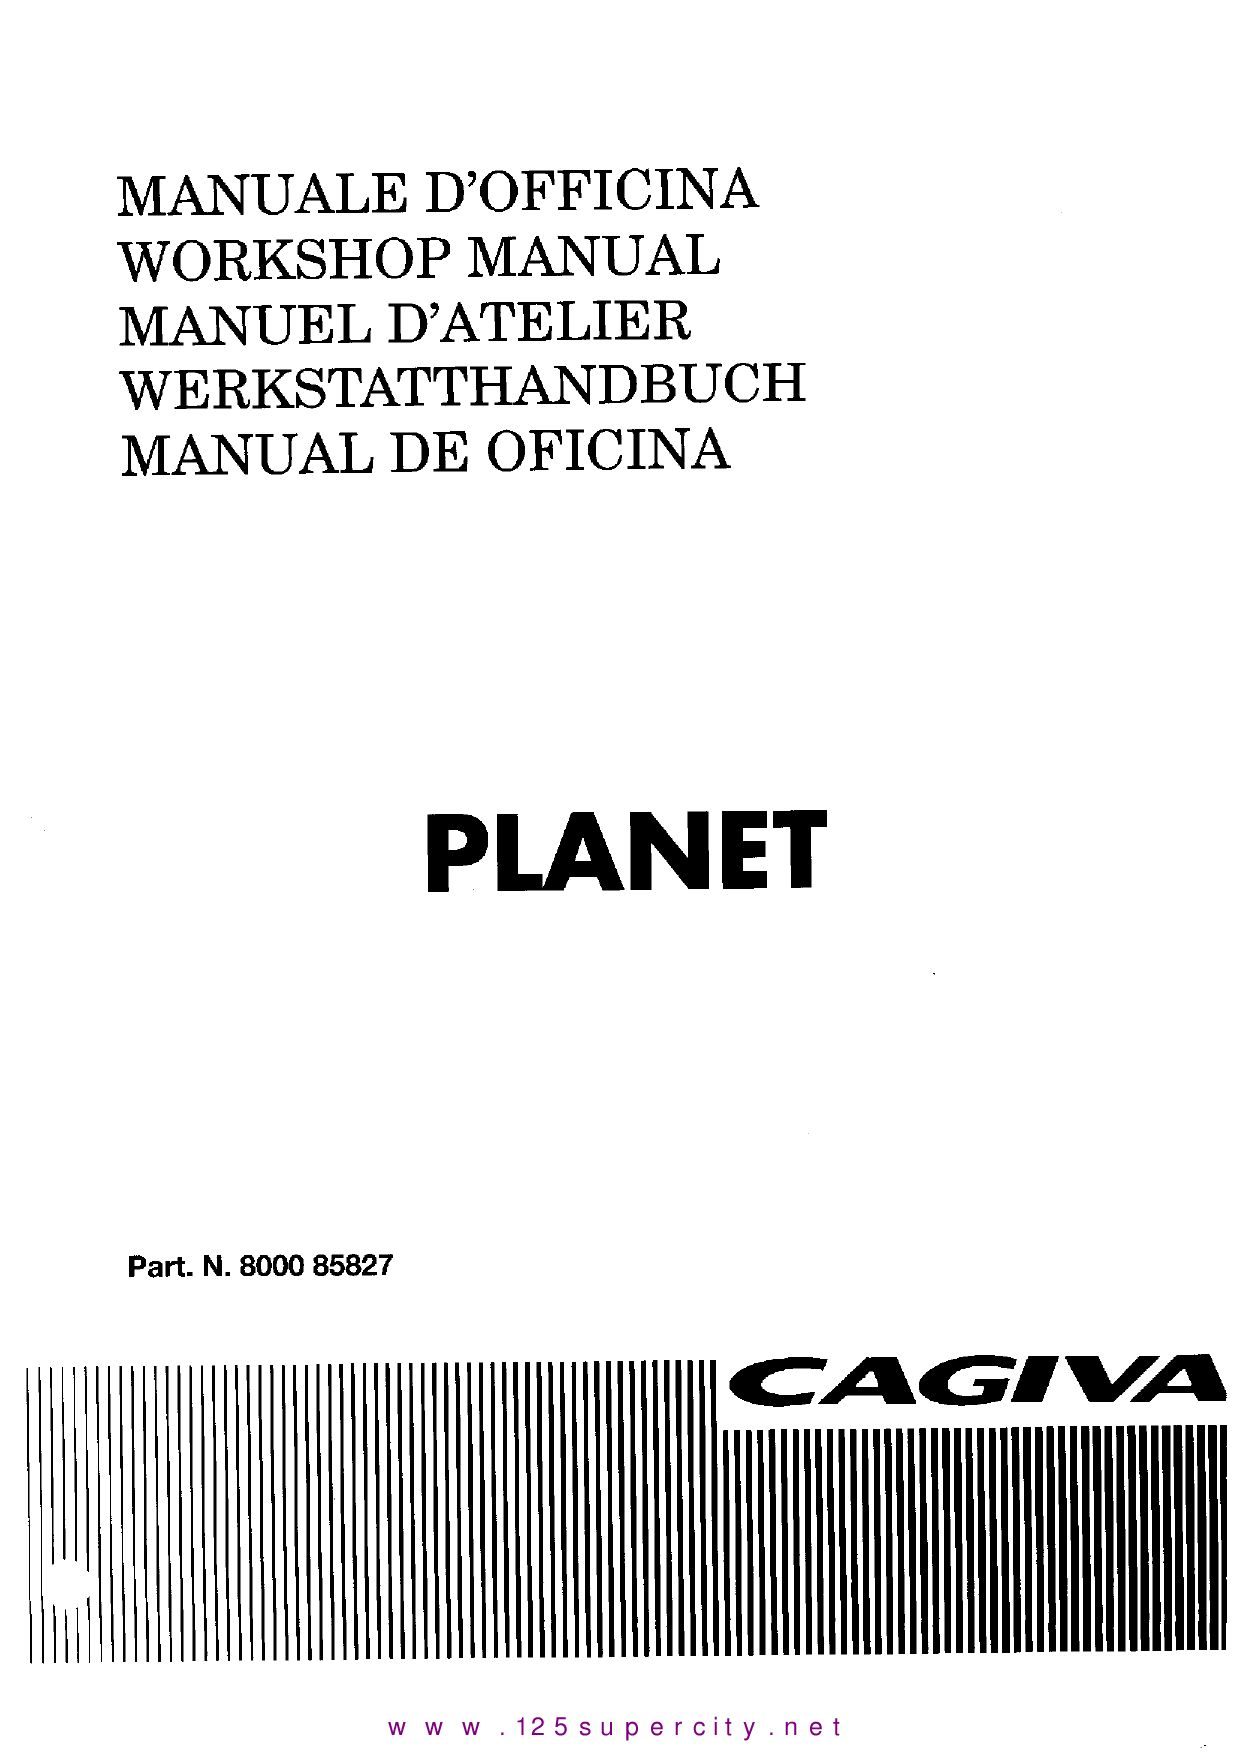 manual cagiva planet by christ cfouq - issuu